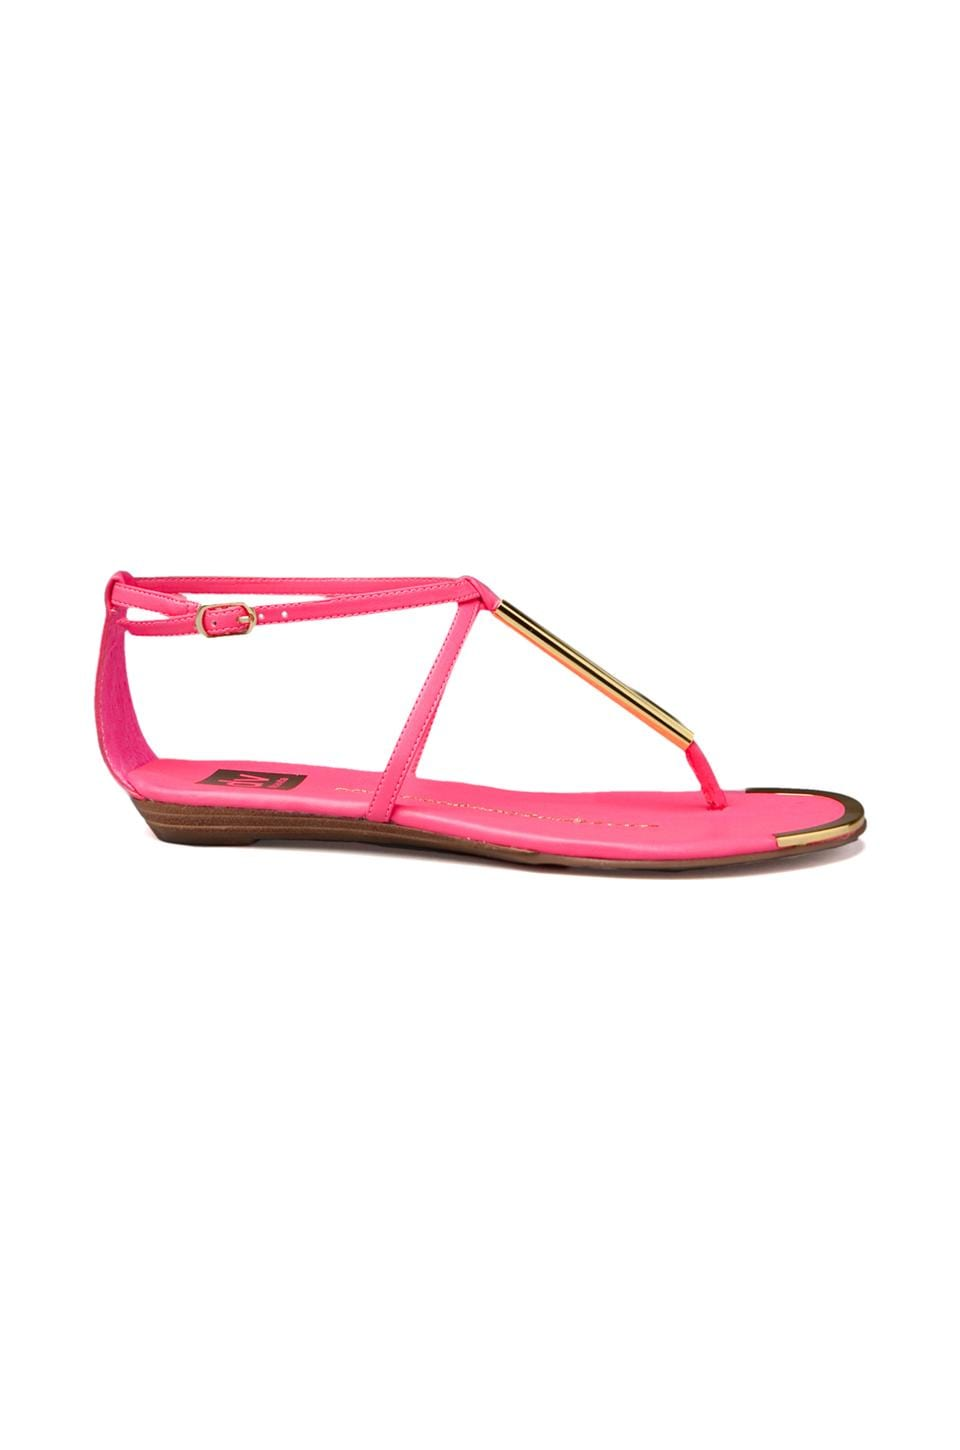 Dolce Vita Archer Sandal in Hot Pink